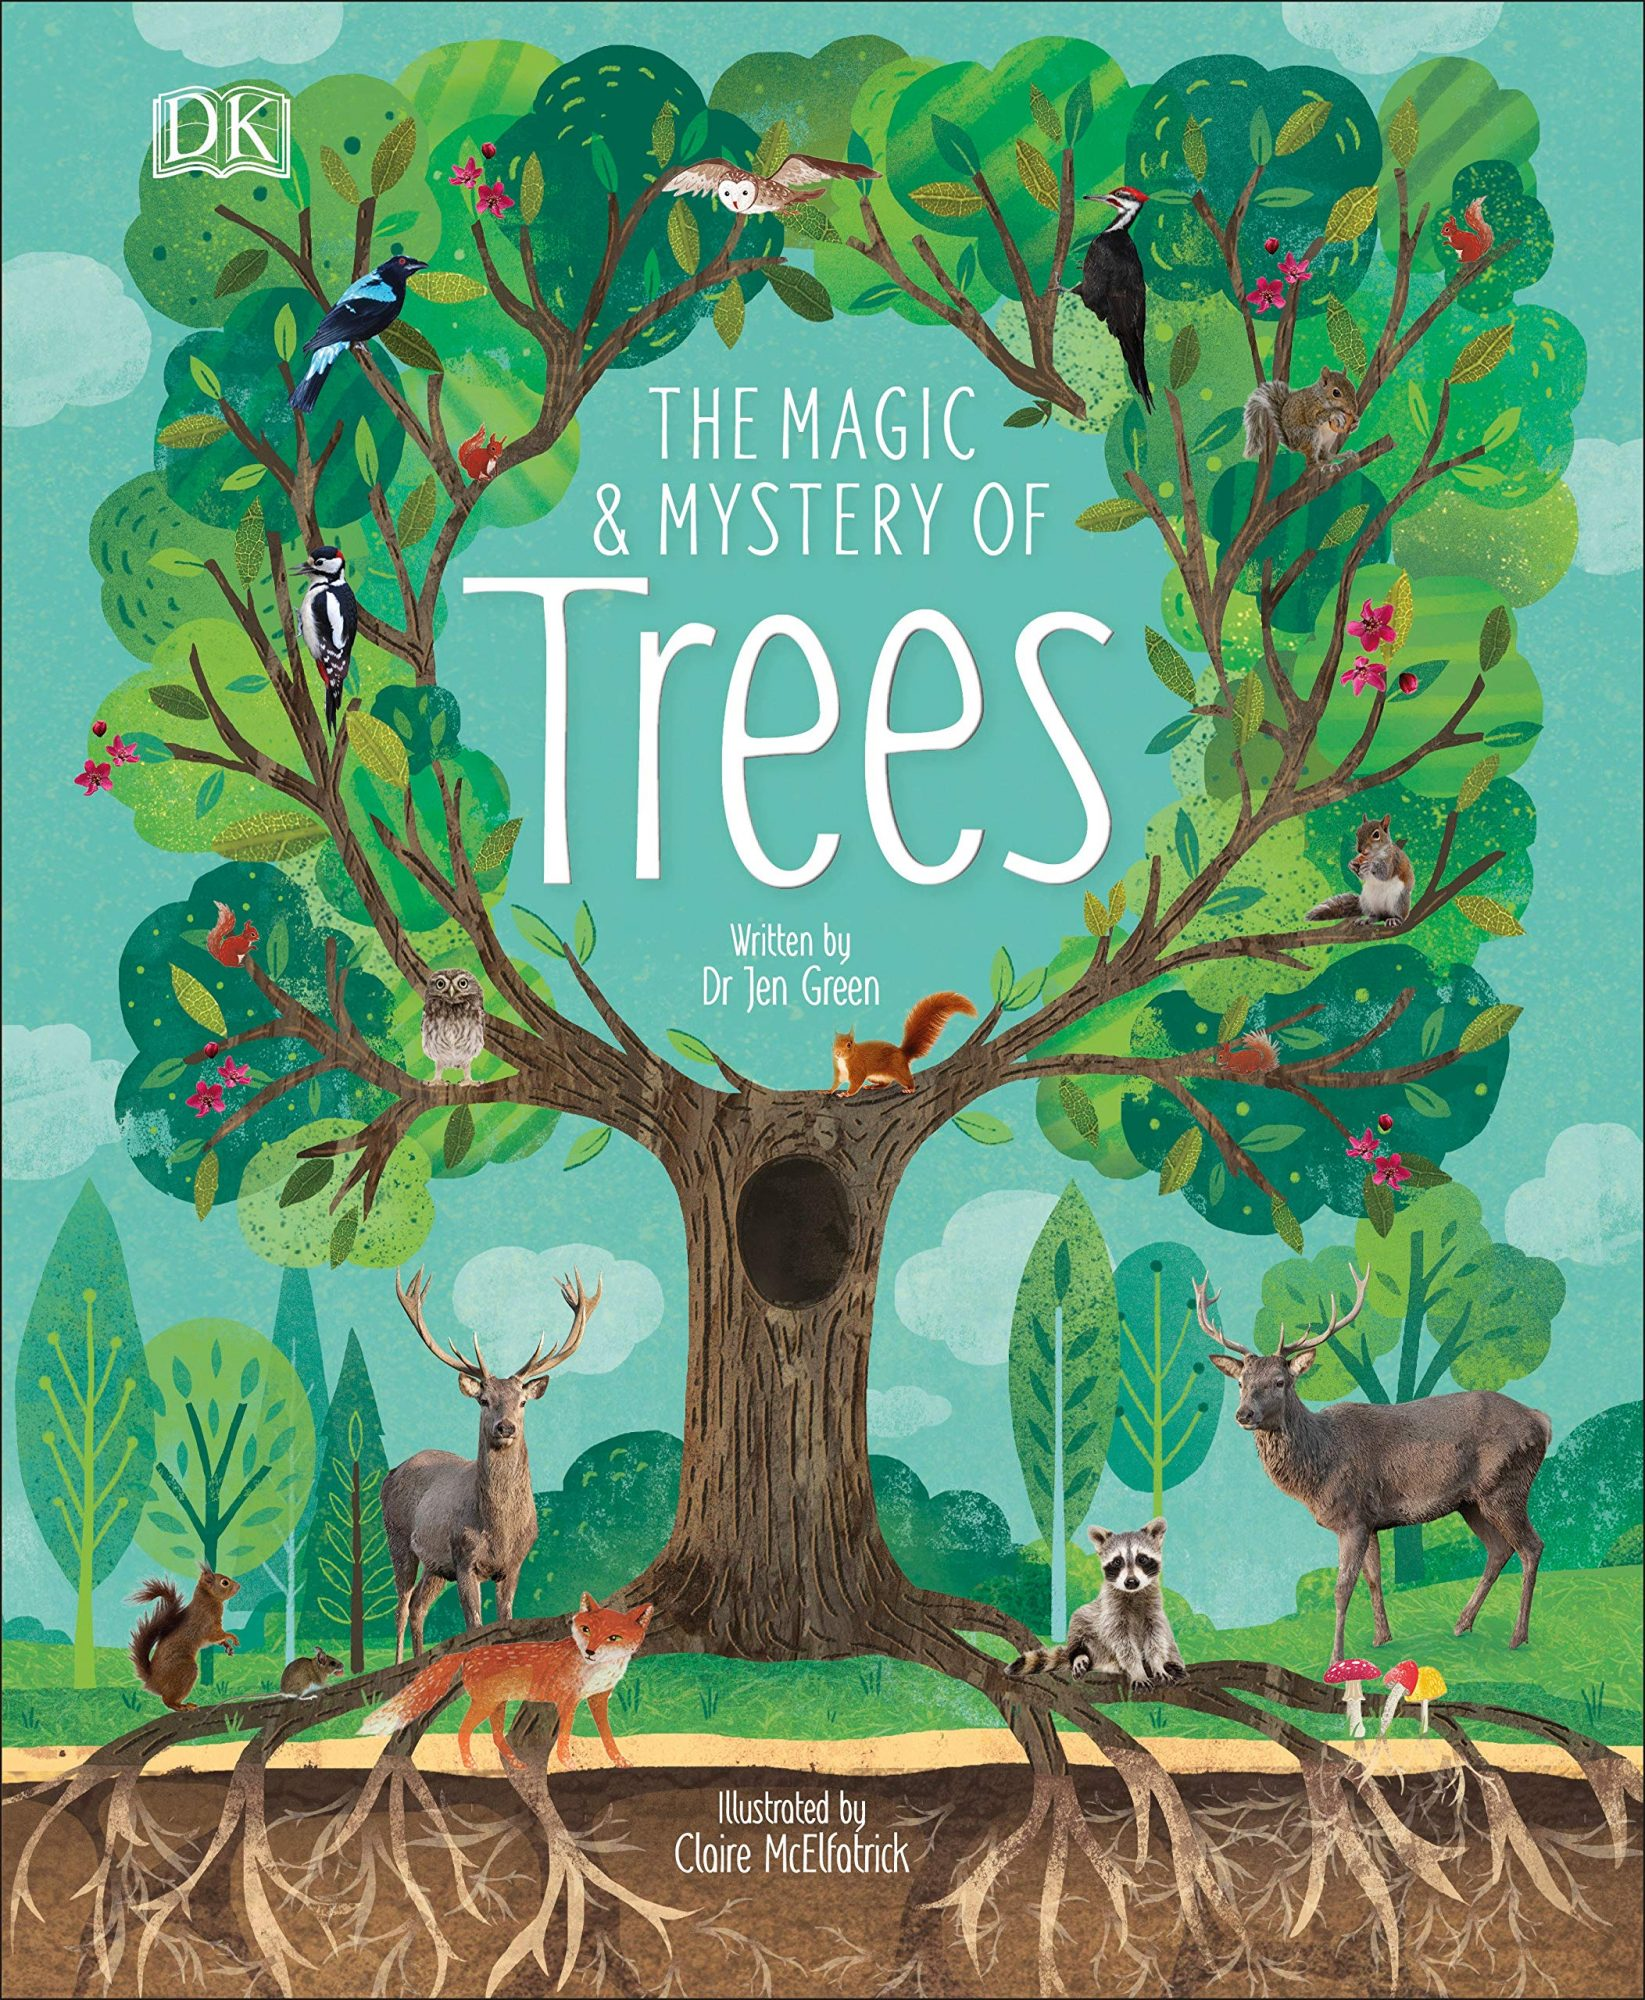 The Magic and Mystery of Trees by Dr. Jen Green and Claire McElfatrick